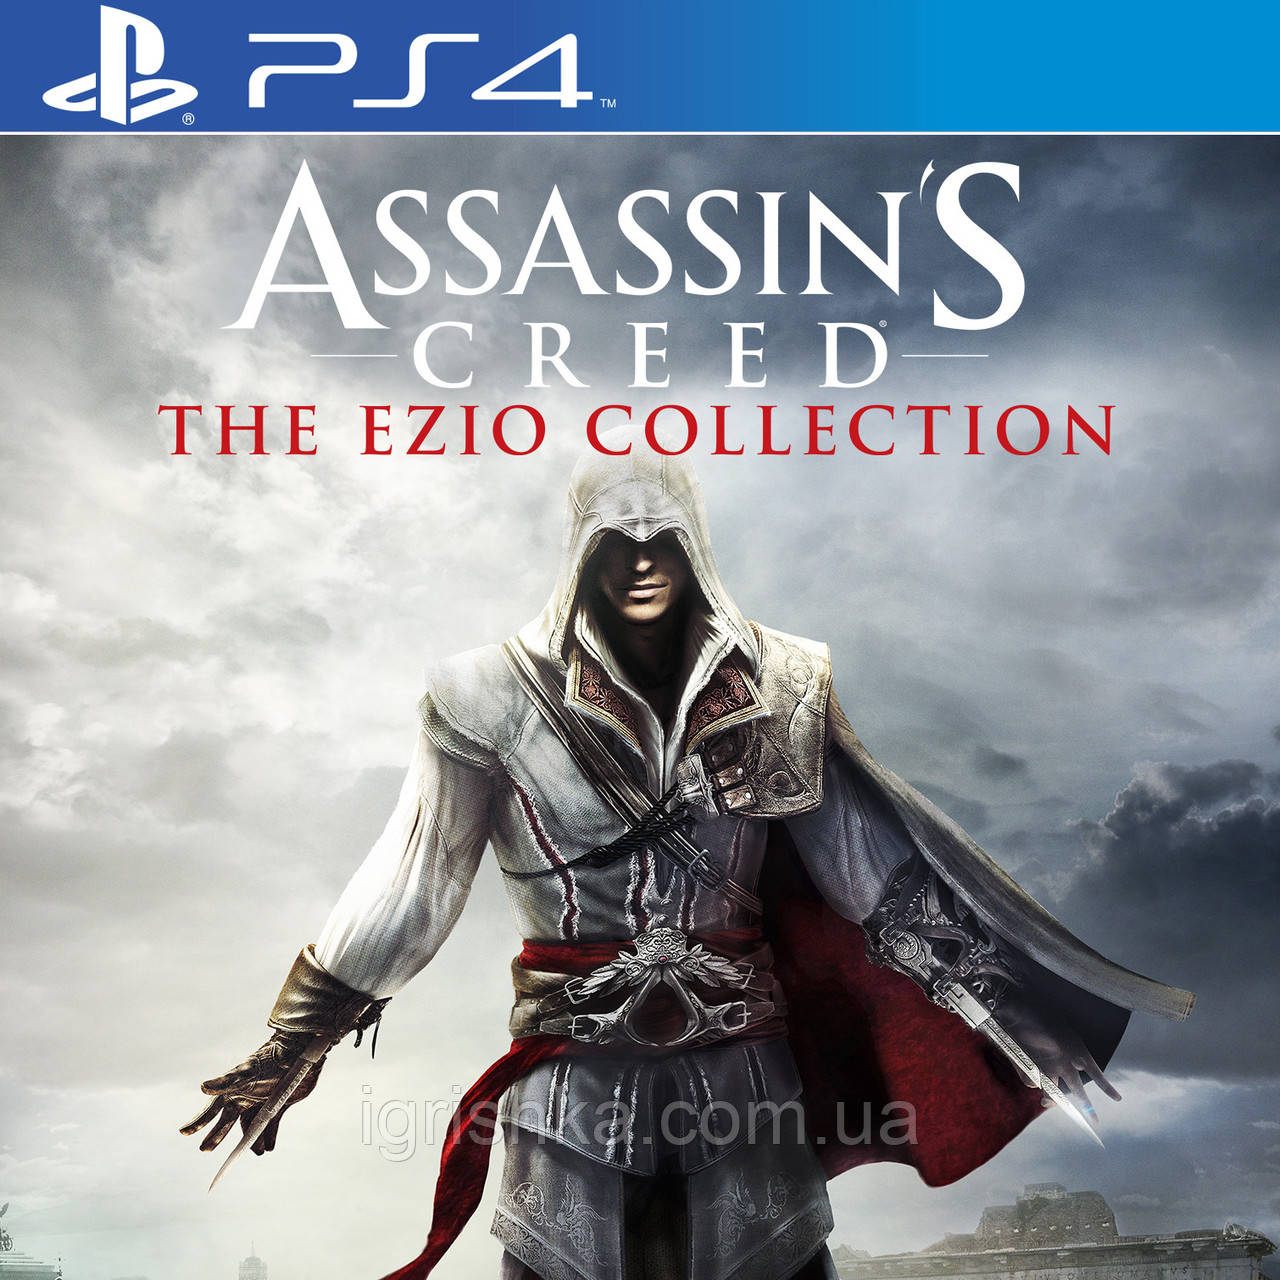 Assassin's Creed The Ezio Collection Ps4 (Цифровой аккаунт для PlayStation 4) П3